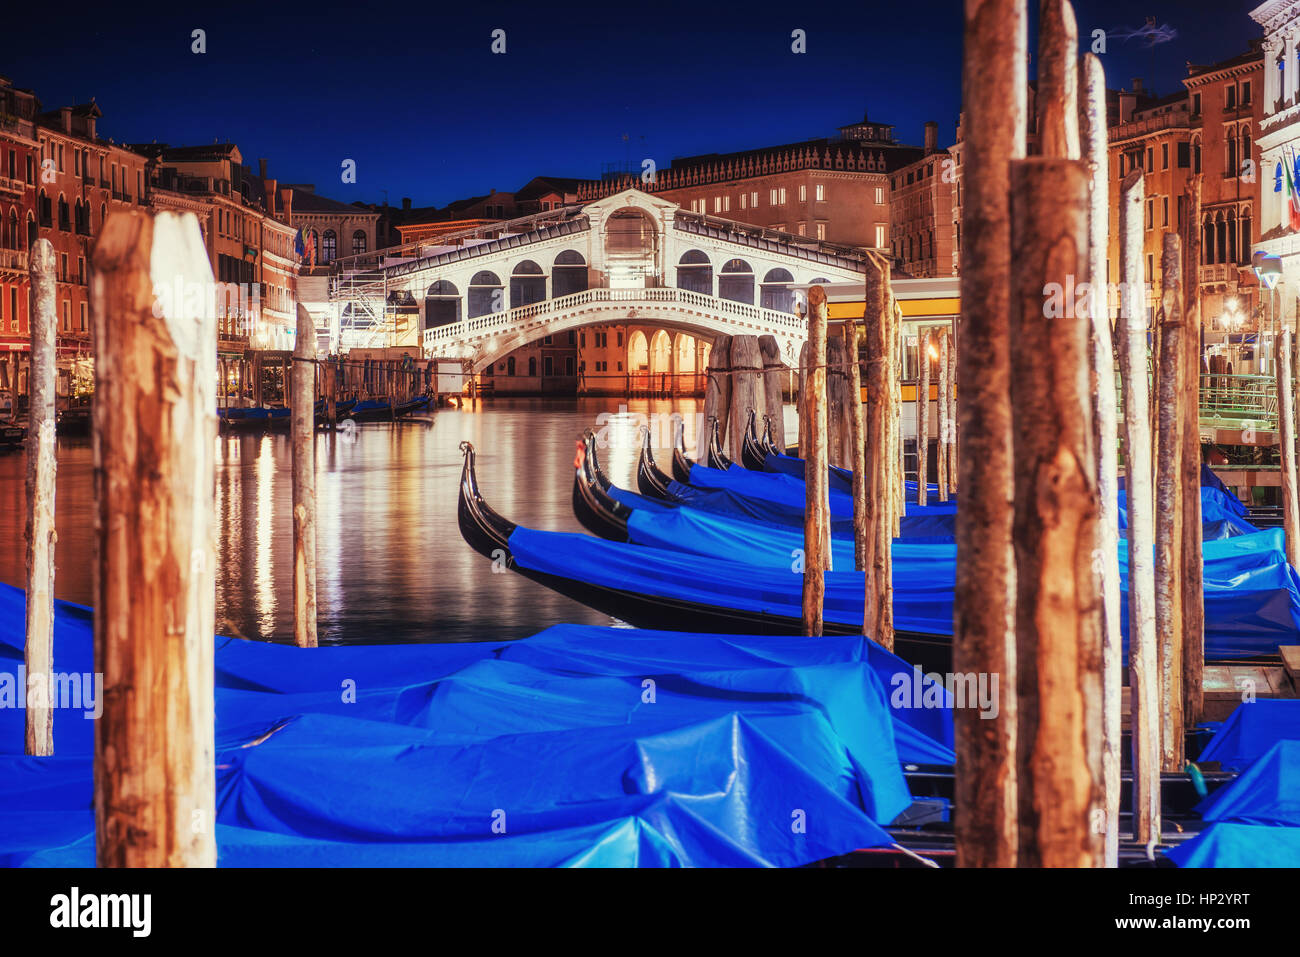 City landscape. Rialto Bridge in Venice - Stock Image